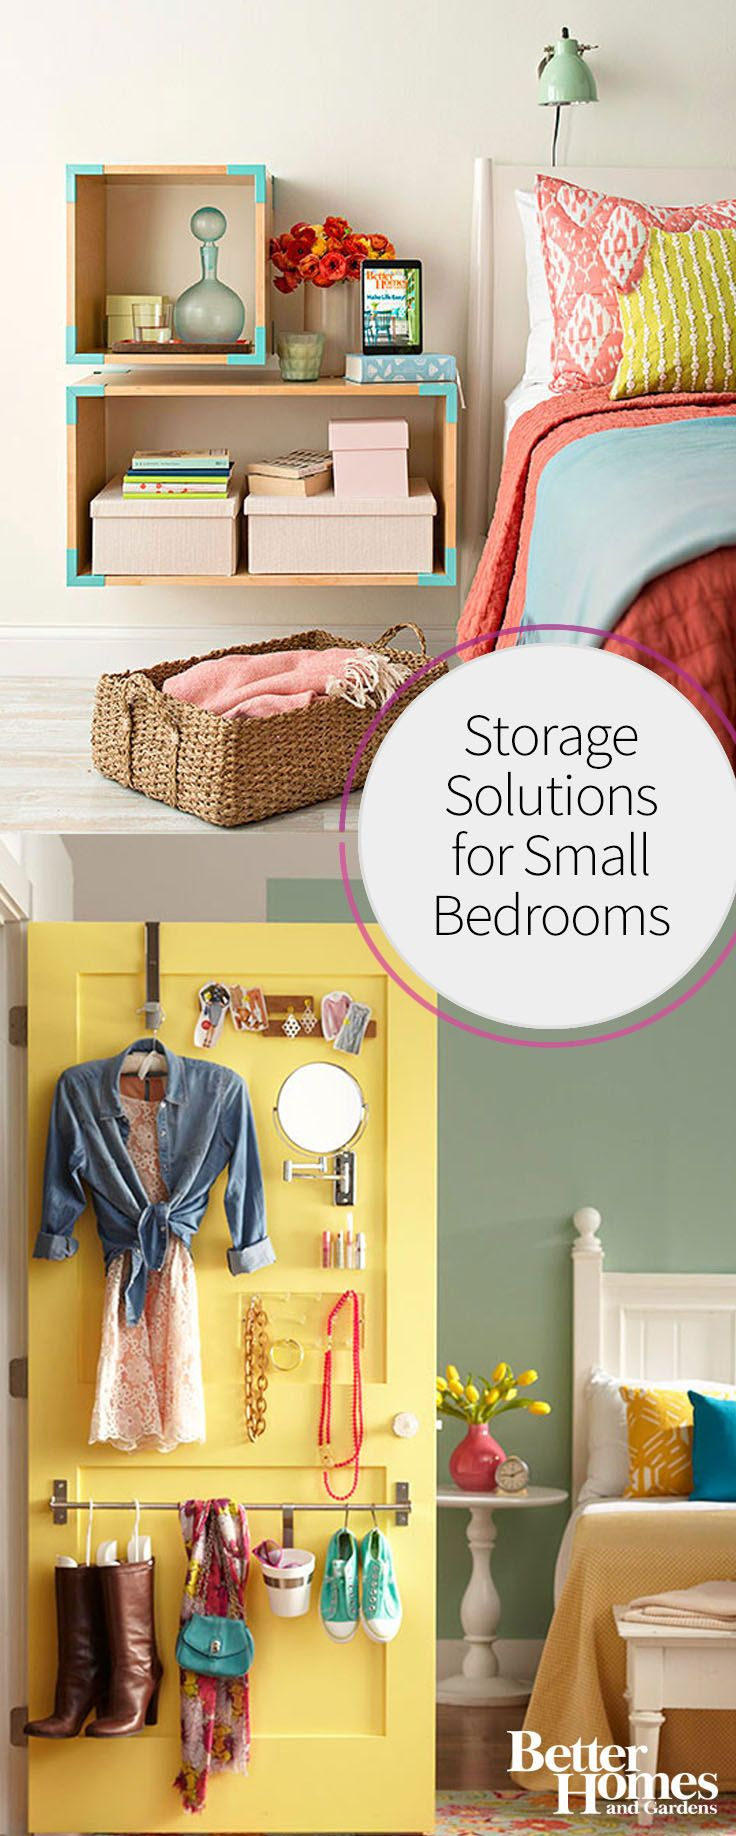 25  best ideas about Small Bedroom Hacks on Pinterest   Bedroom hacks  Tiny  closet and Small space bedroom. 25  best ideas about Small Bedroom Hacks on Pinterest   Bedroom